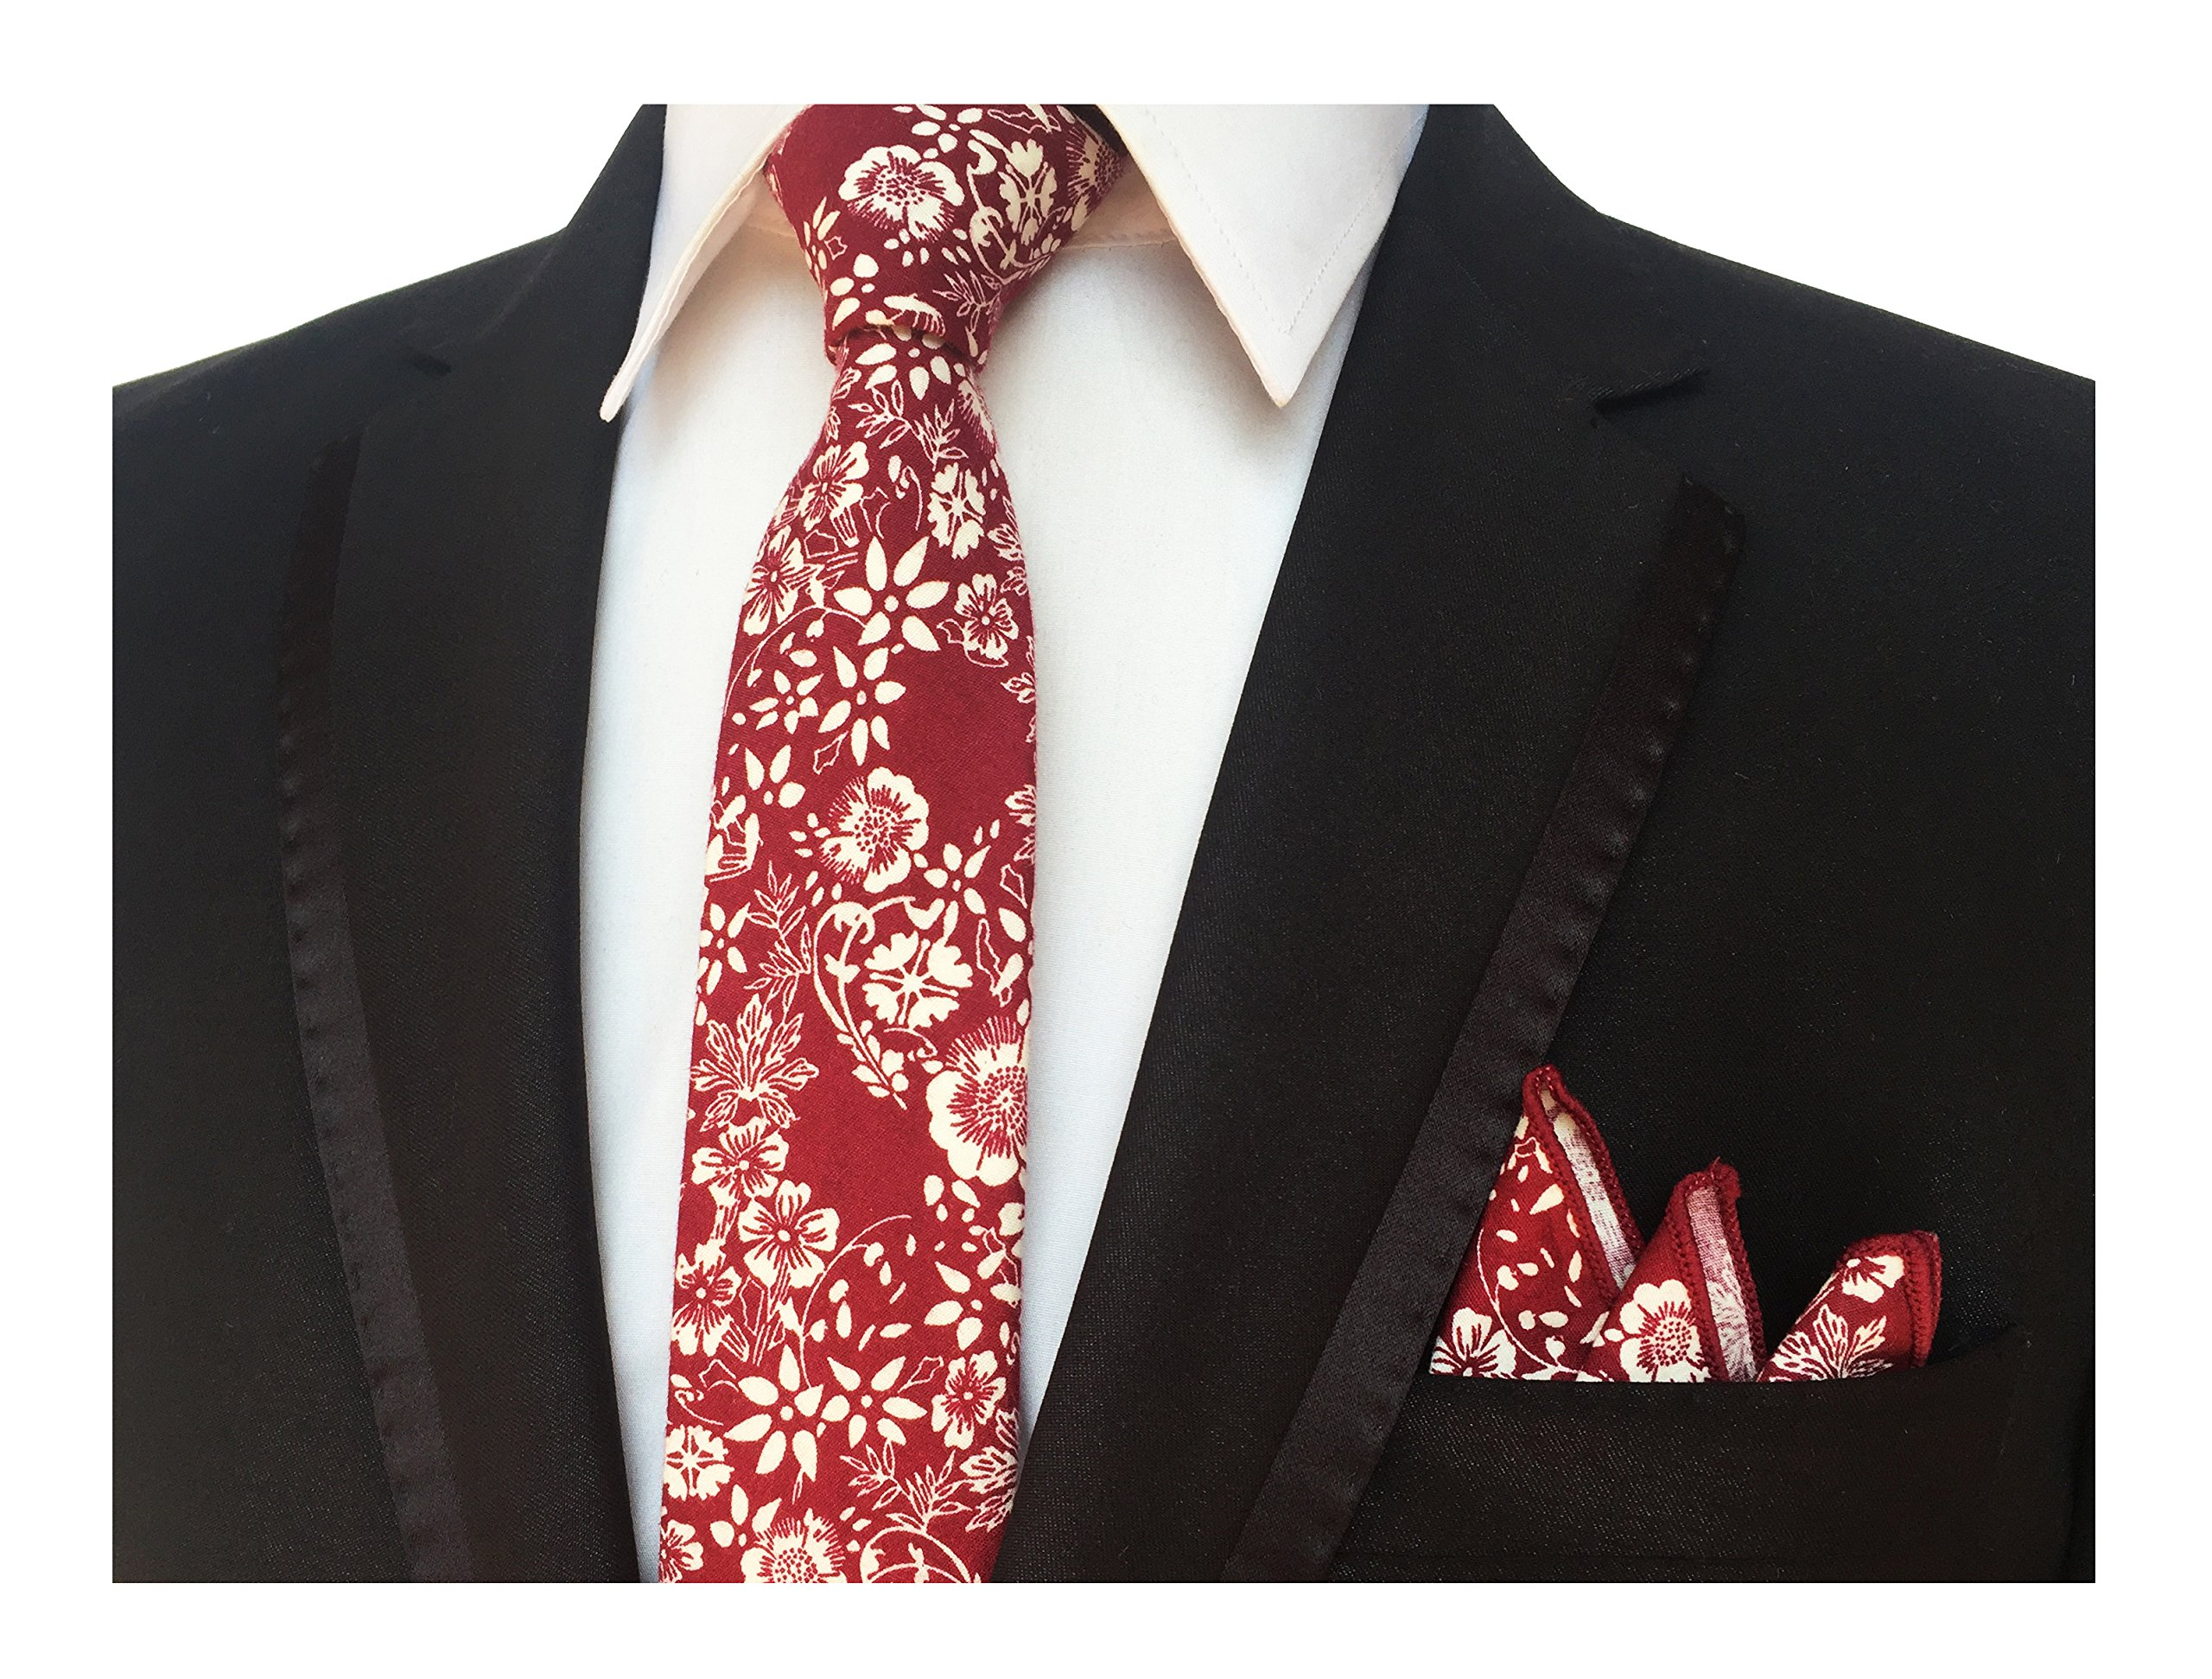 Men's Red White Ties Cotton Flowers Printed Neckties Great for Weddings Gifts